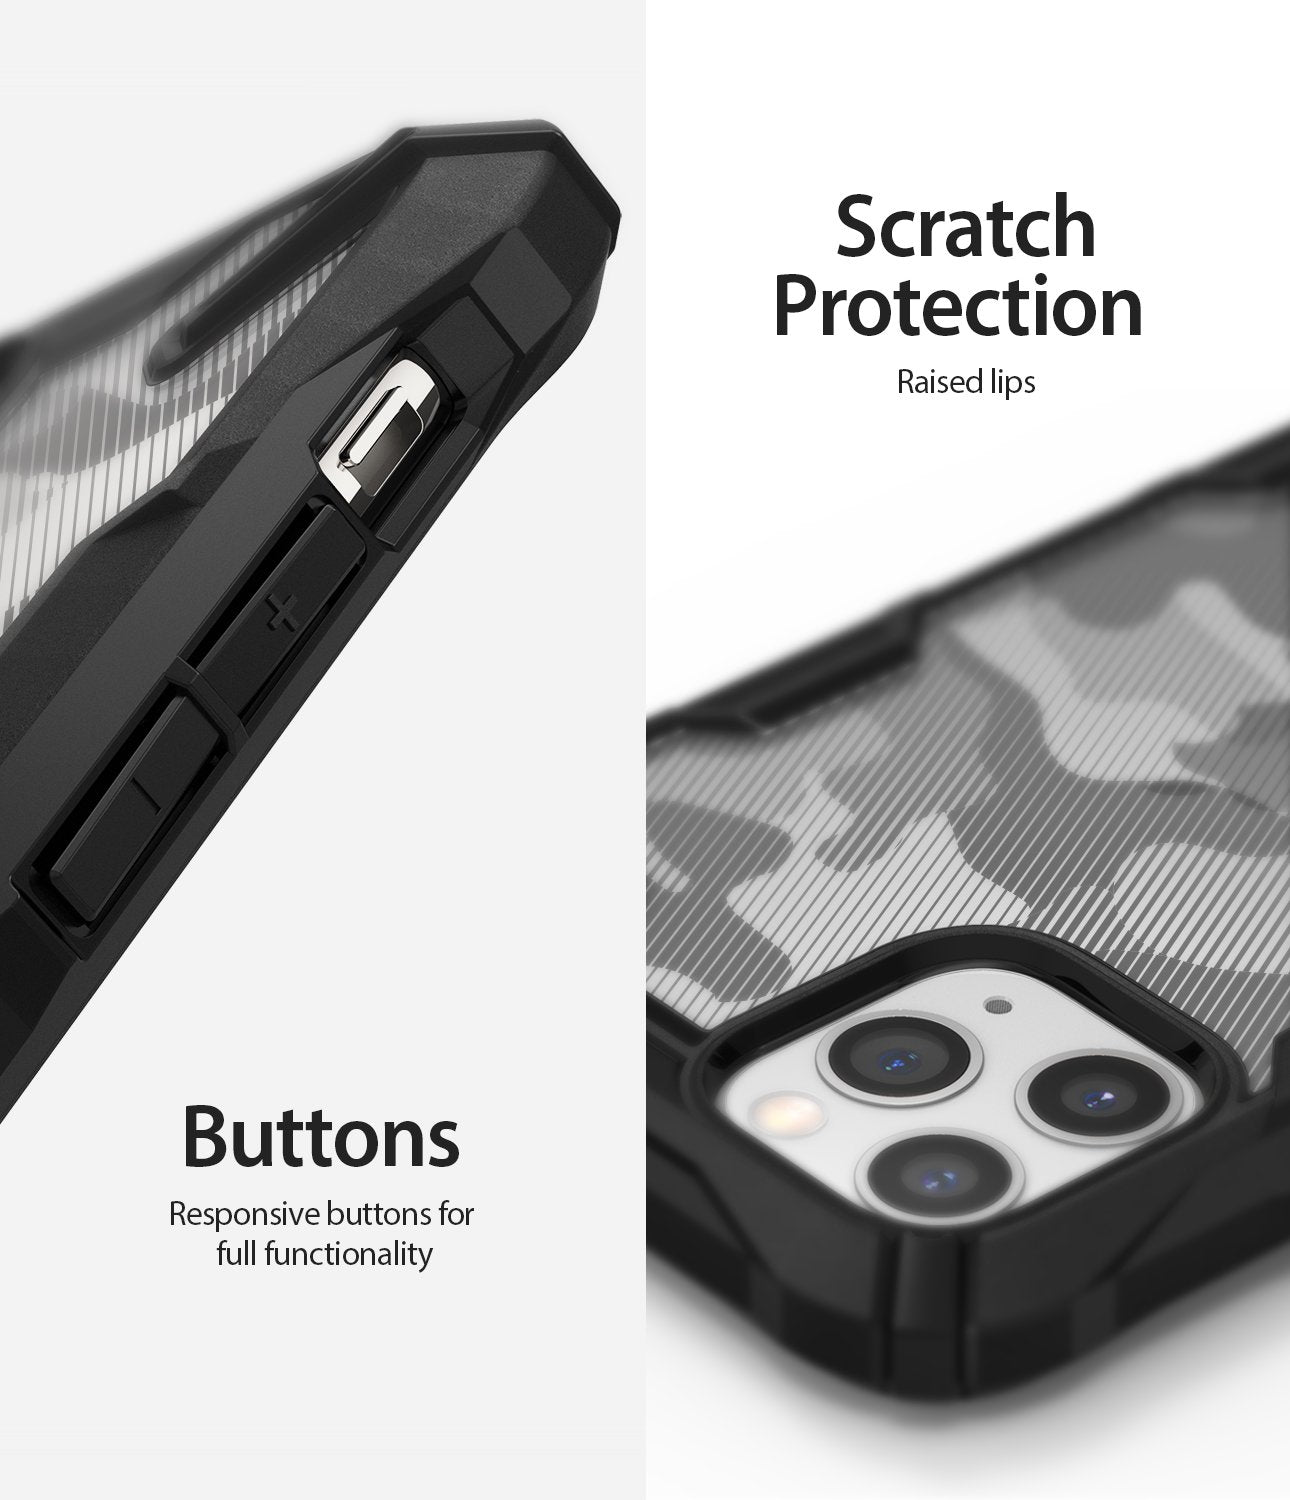 ringke fusion-x ddp case compatible with iphone 11 pro (2019) - Camo Black